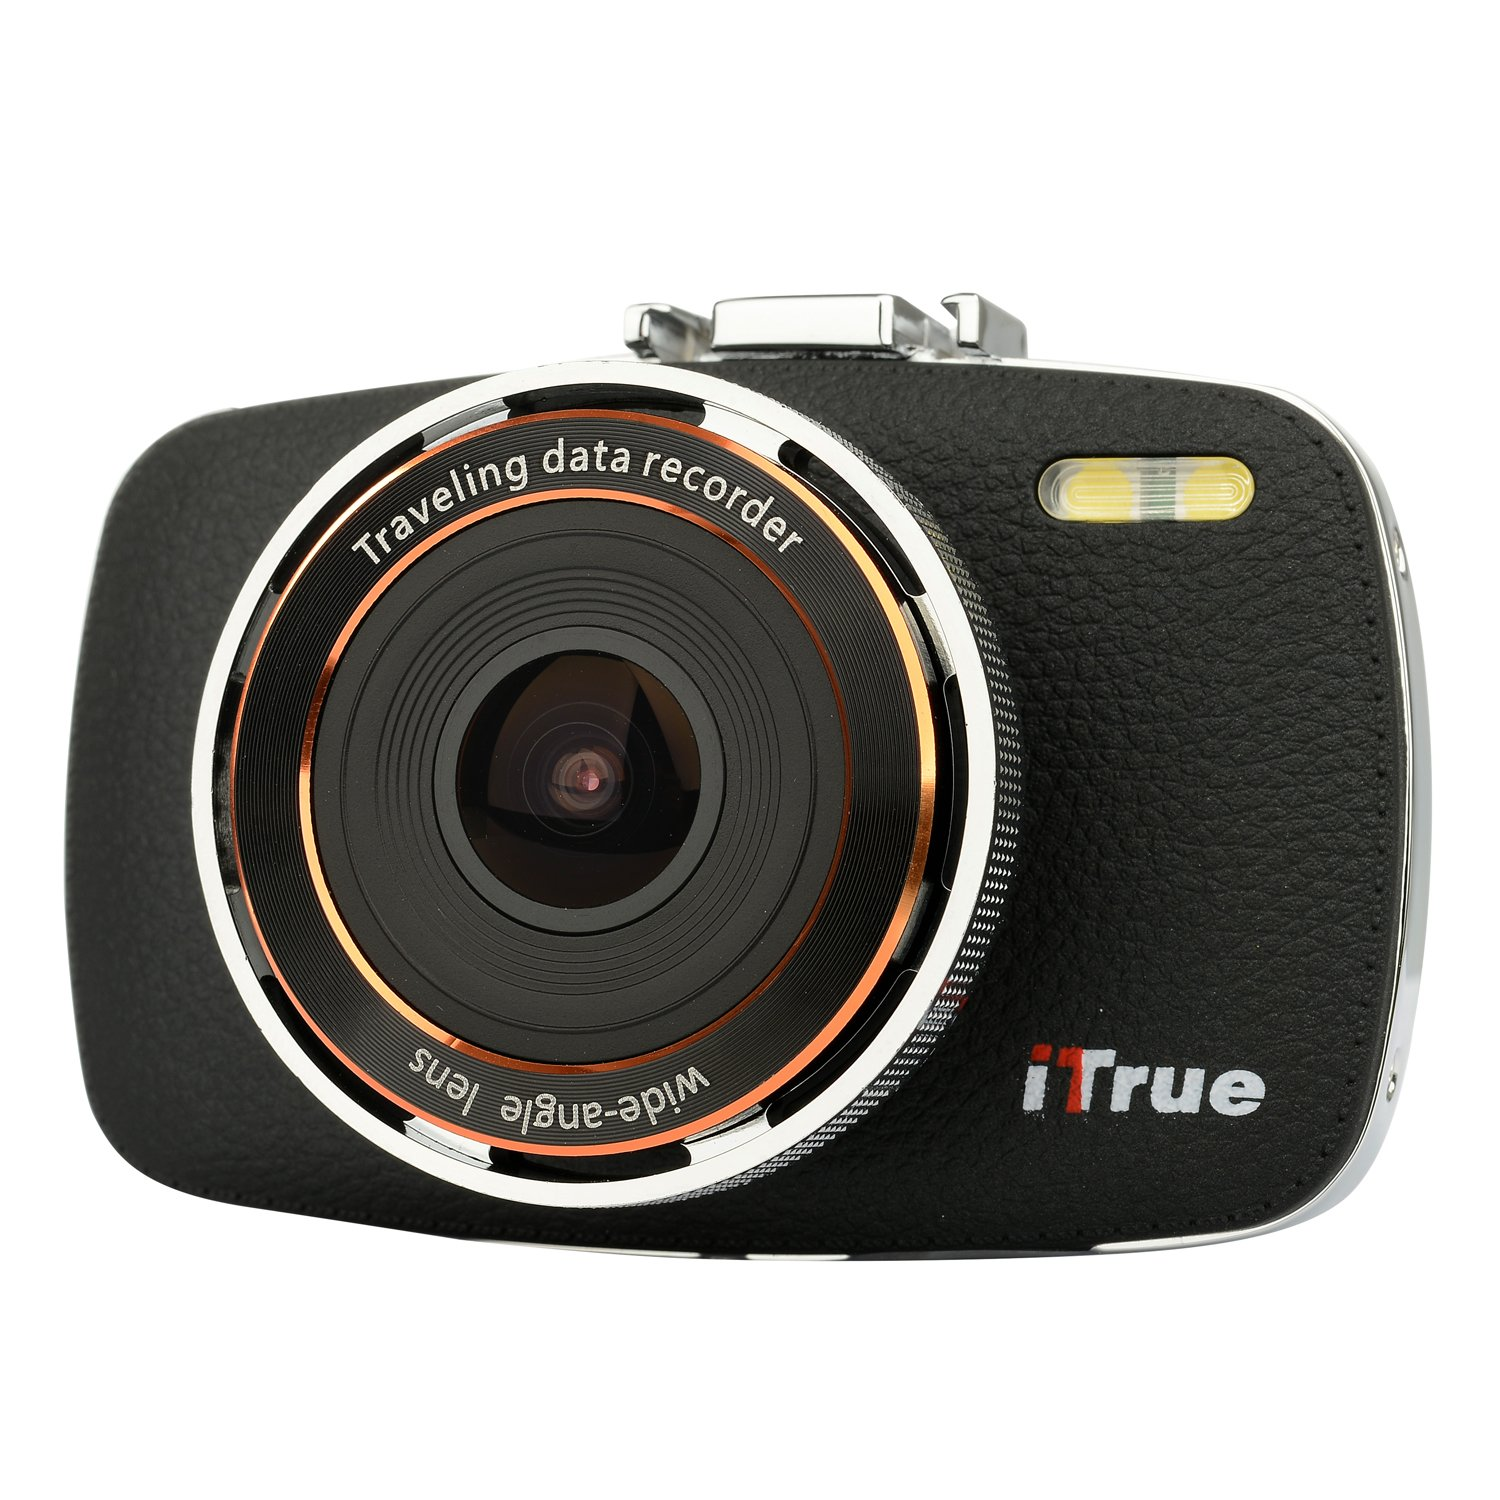 ITrue X3 Dash Cam,2.7Inch LCD,1080P,170 degree Angle,Night Vision and 8GB Card by iTrue